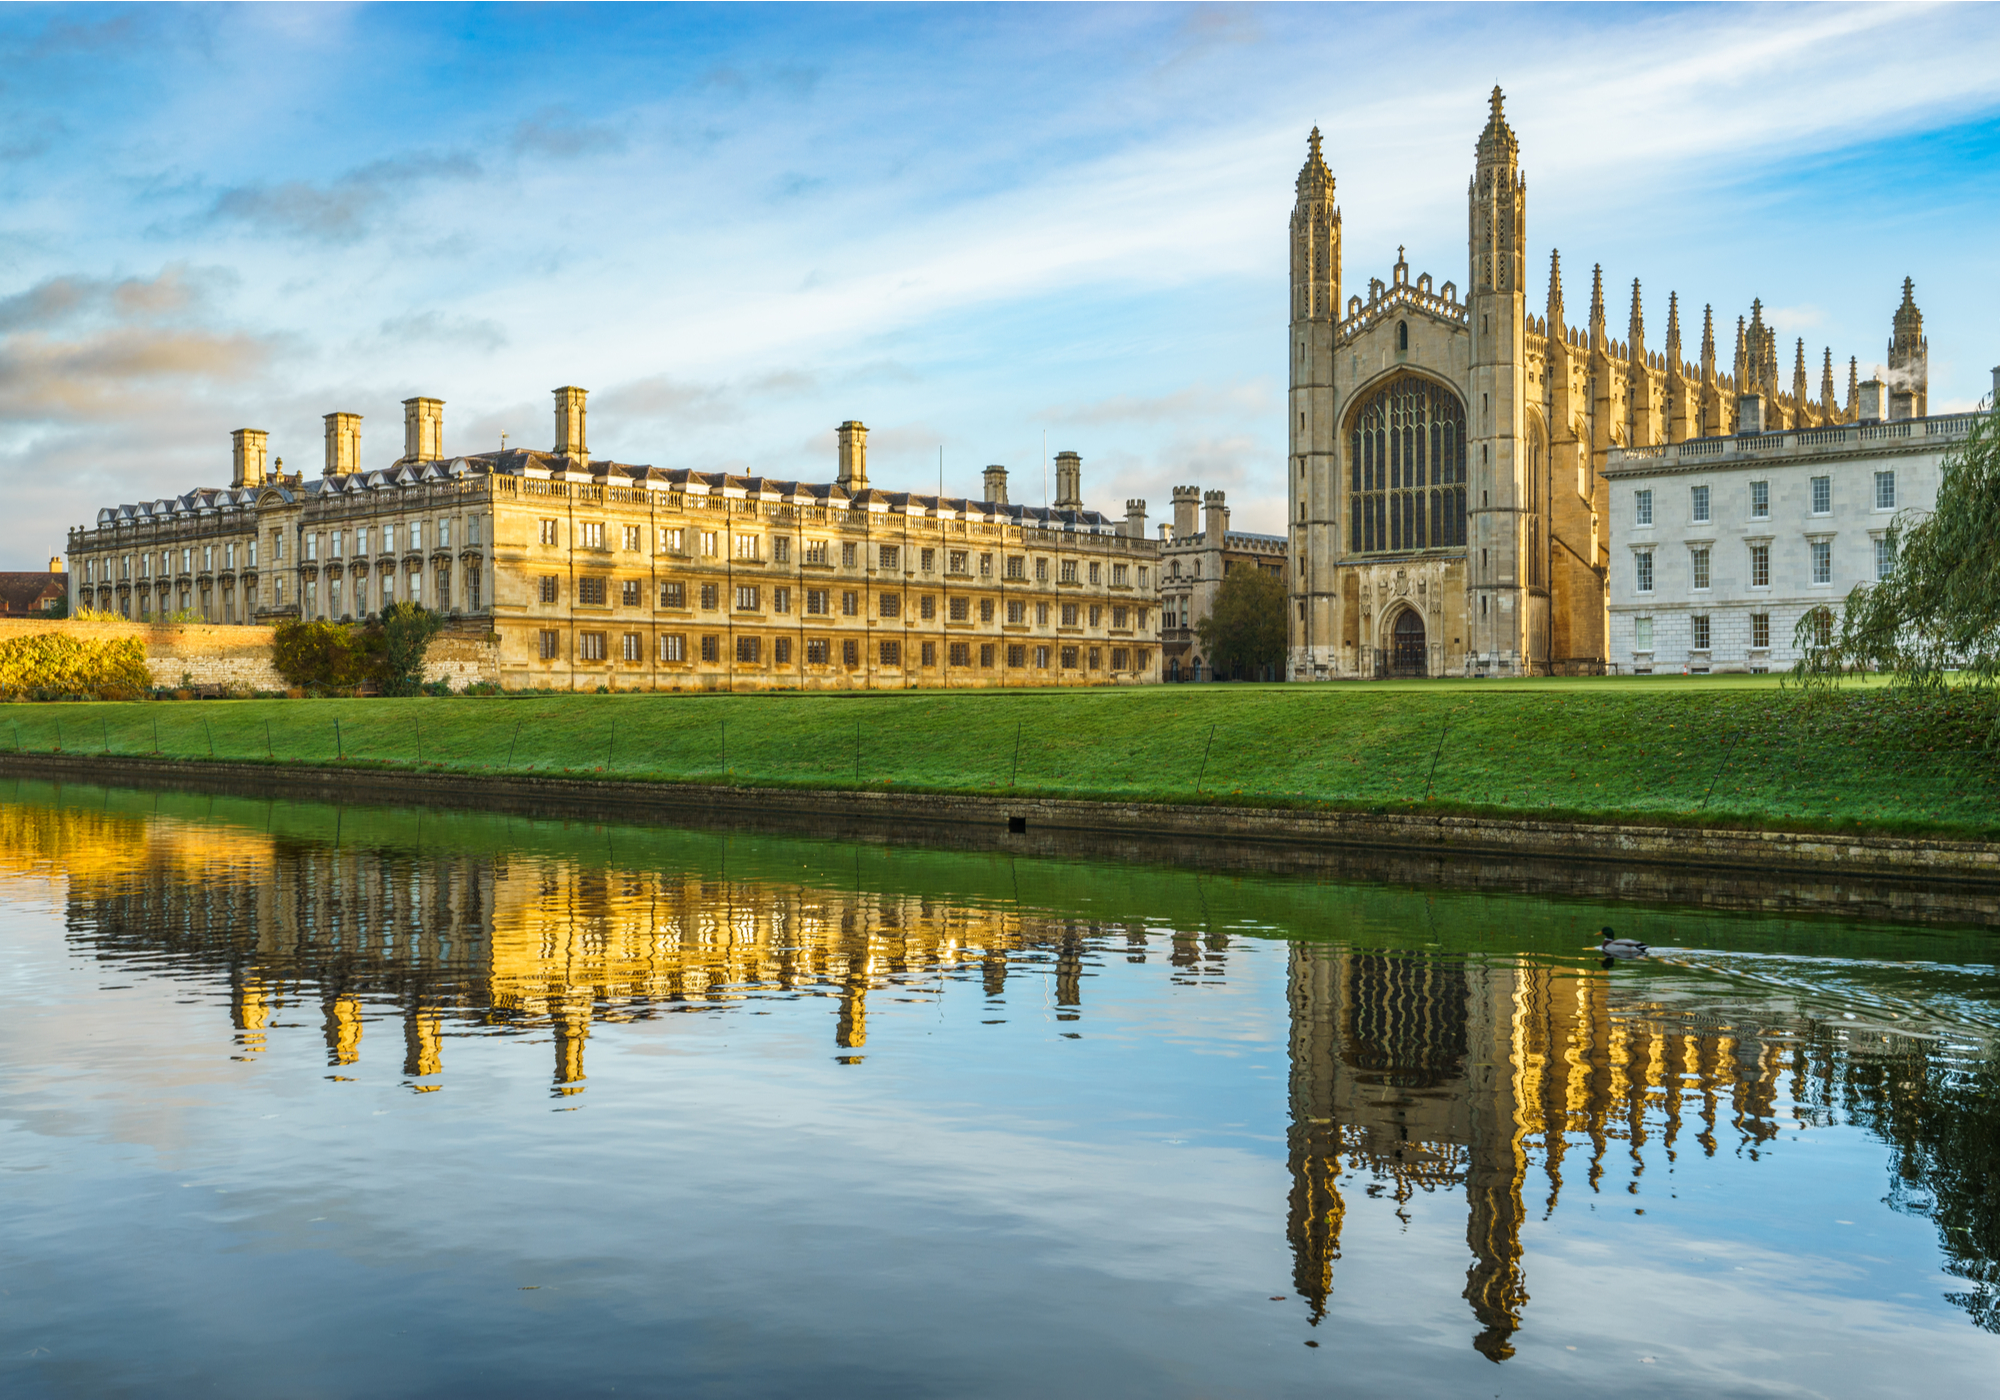 Cambridge tech salaries among highest in the UK